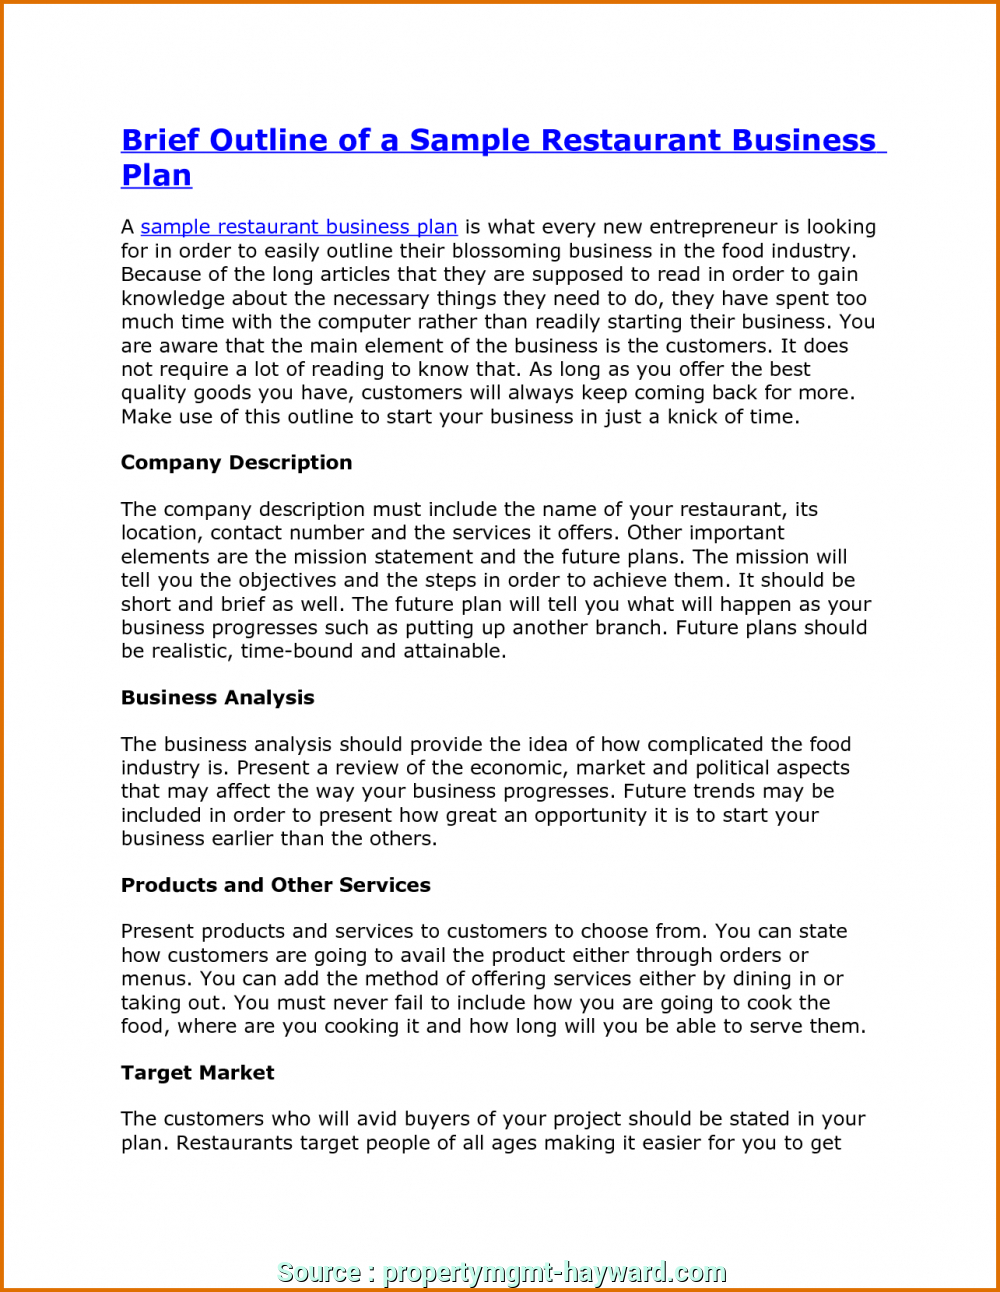 Tiger Spreadsheet Solutions Intended For Business Plan For Restaurant Fantastic Conclusion Solutions Tiger